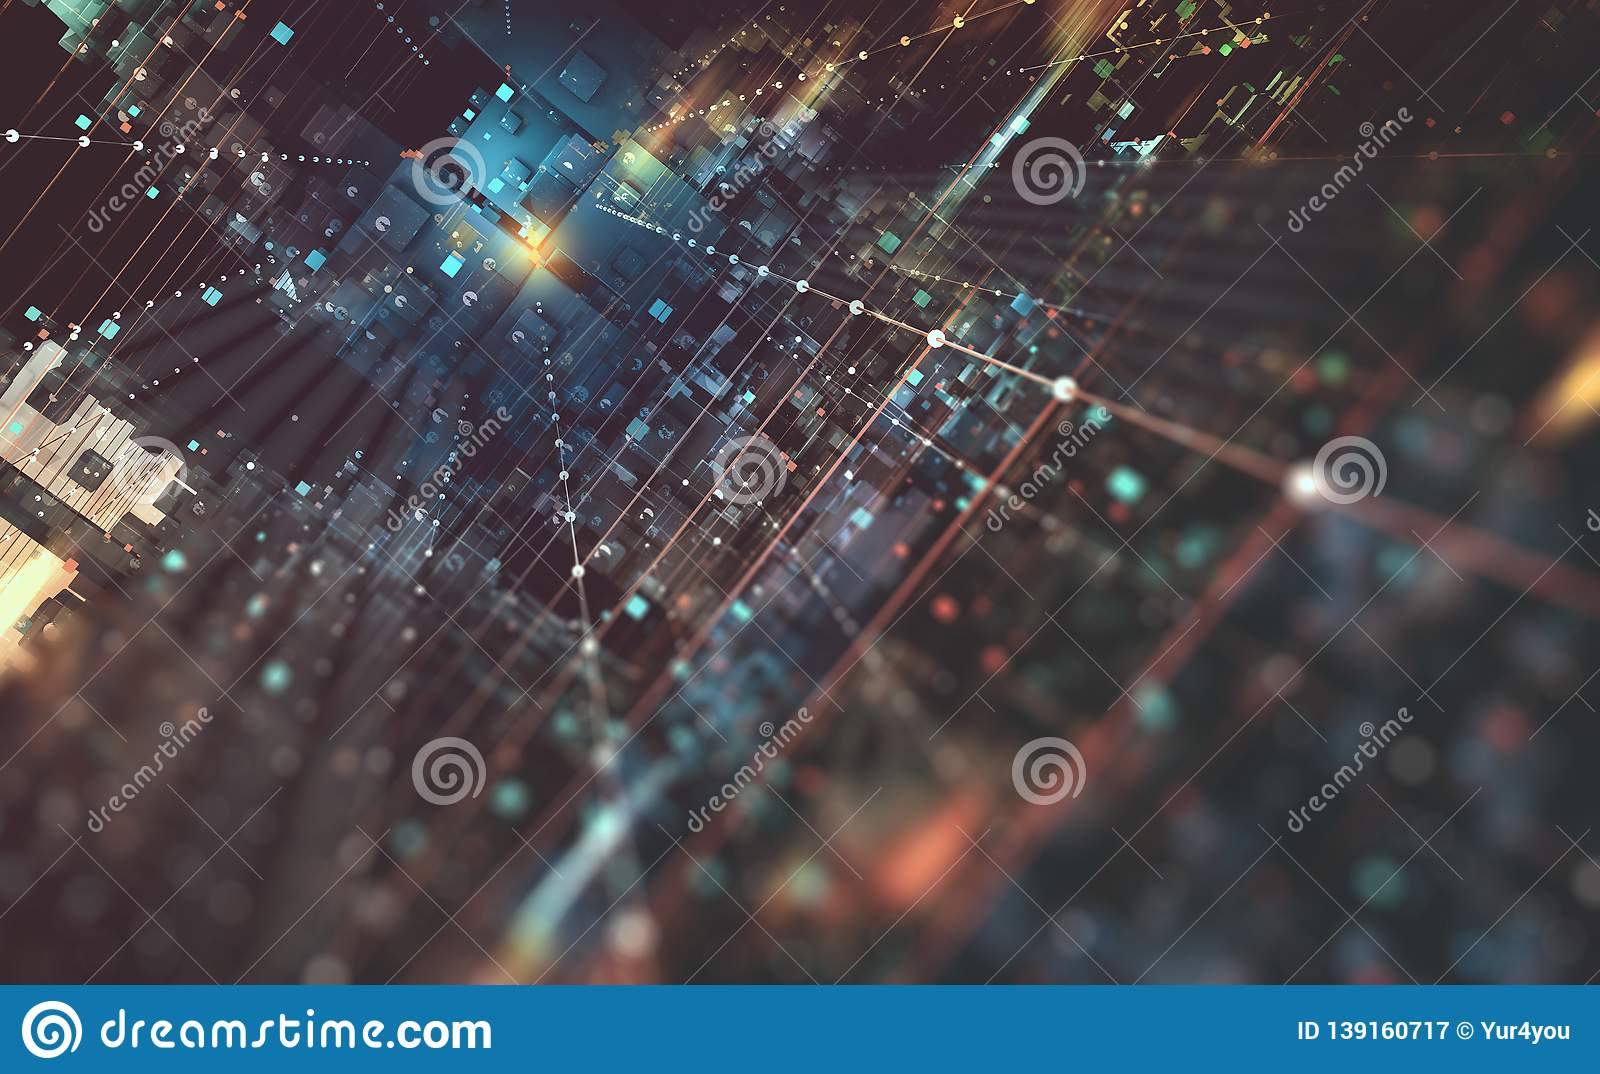 https://thumbs.dreamstime.com/z/abstract-tech-background-d-illustration-quantum-computer-architecture-fantastic-night-city-futuristic-technologies-abstract-tech-139160717.jpg